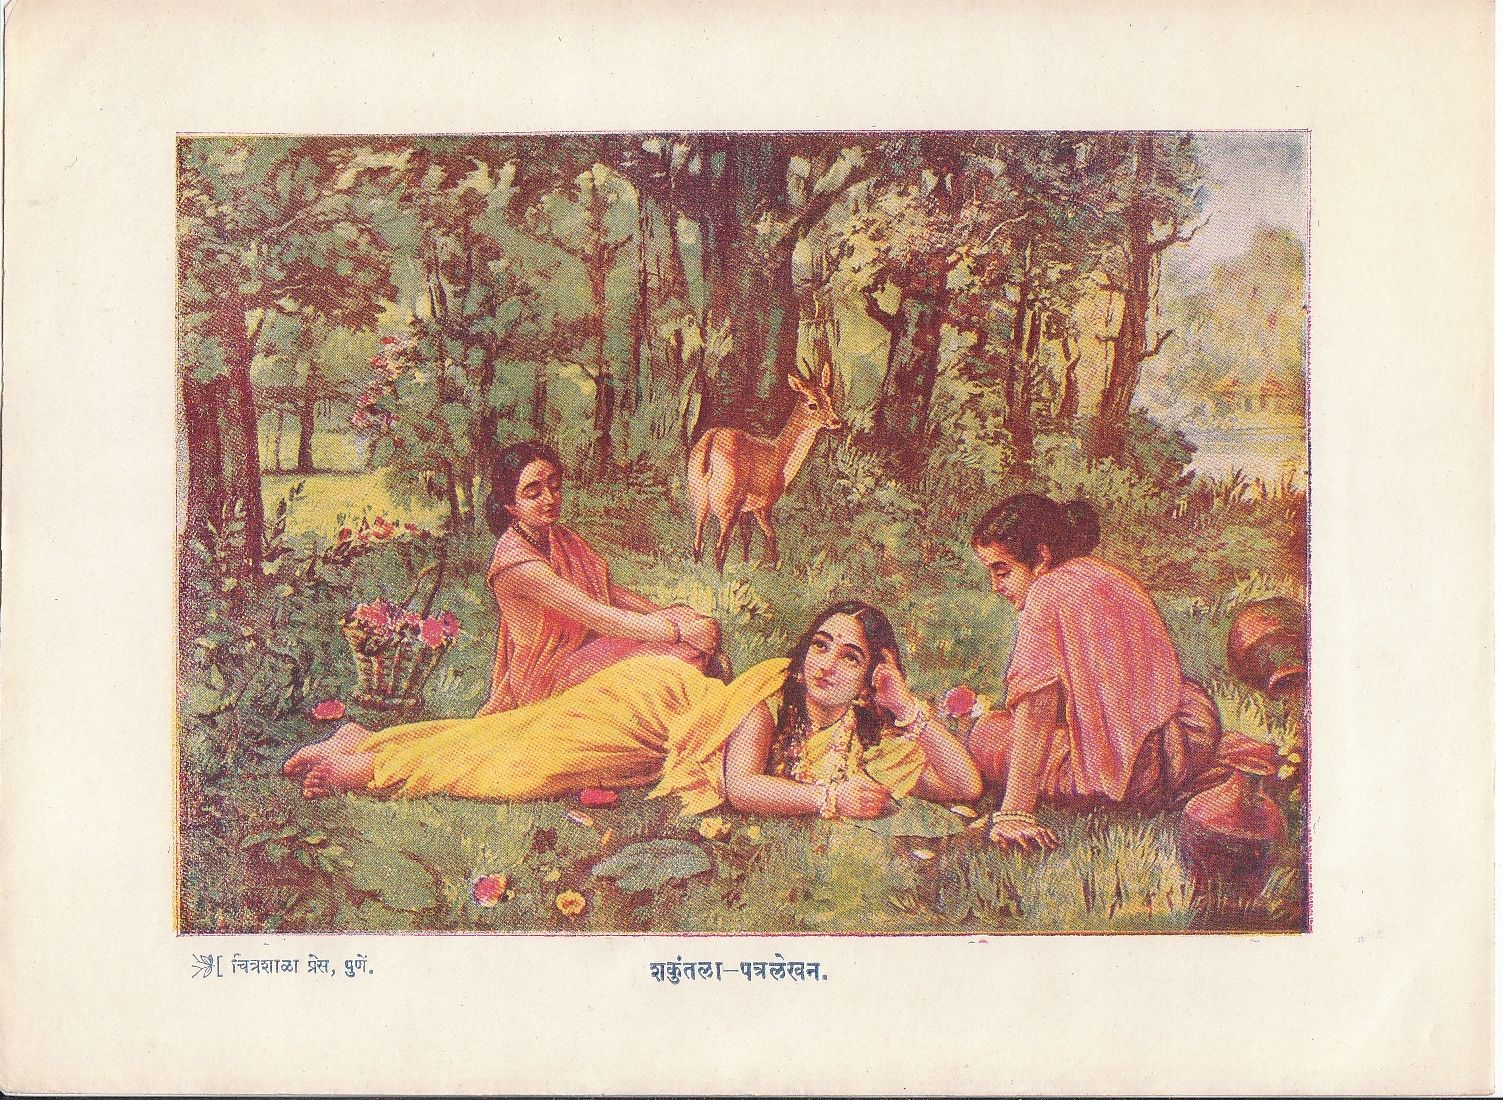 Shakuntala Writing a Letter - Indian Lithograph,  Chitrashala Press, Pune c1920-30